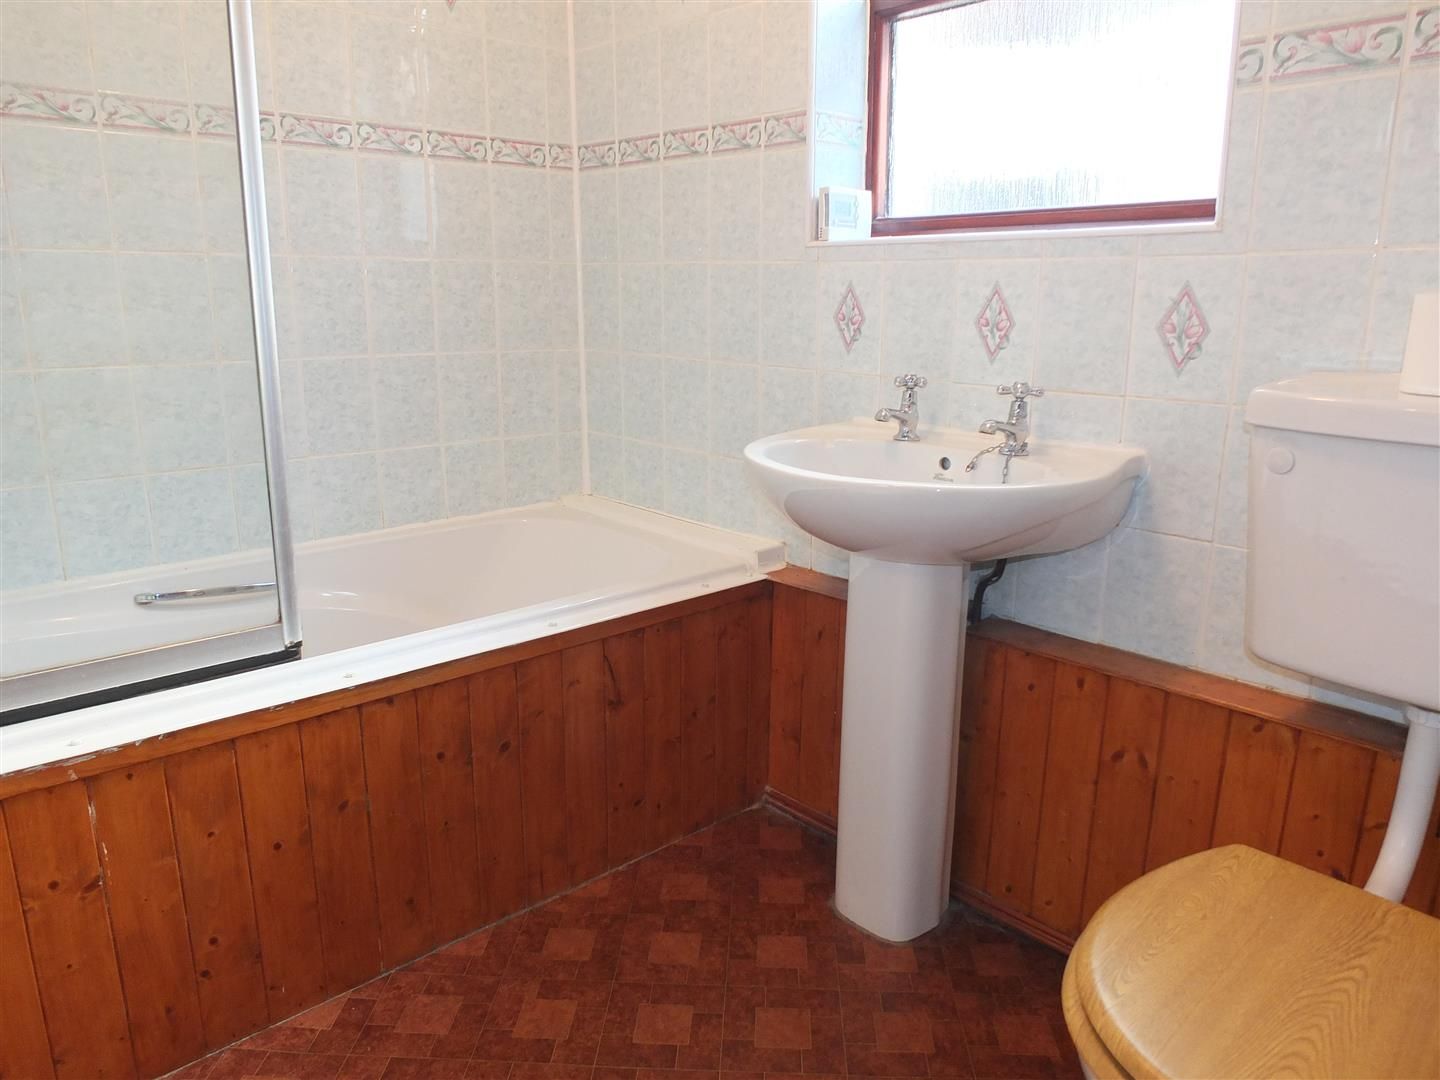 3 bed house to rent in Sutton Bridge Spalding, PE12 9UJ  - Property Image 5